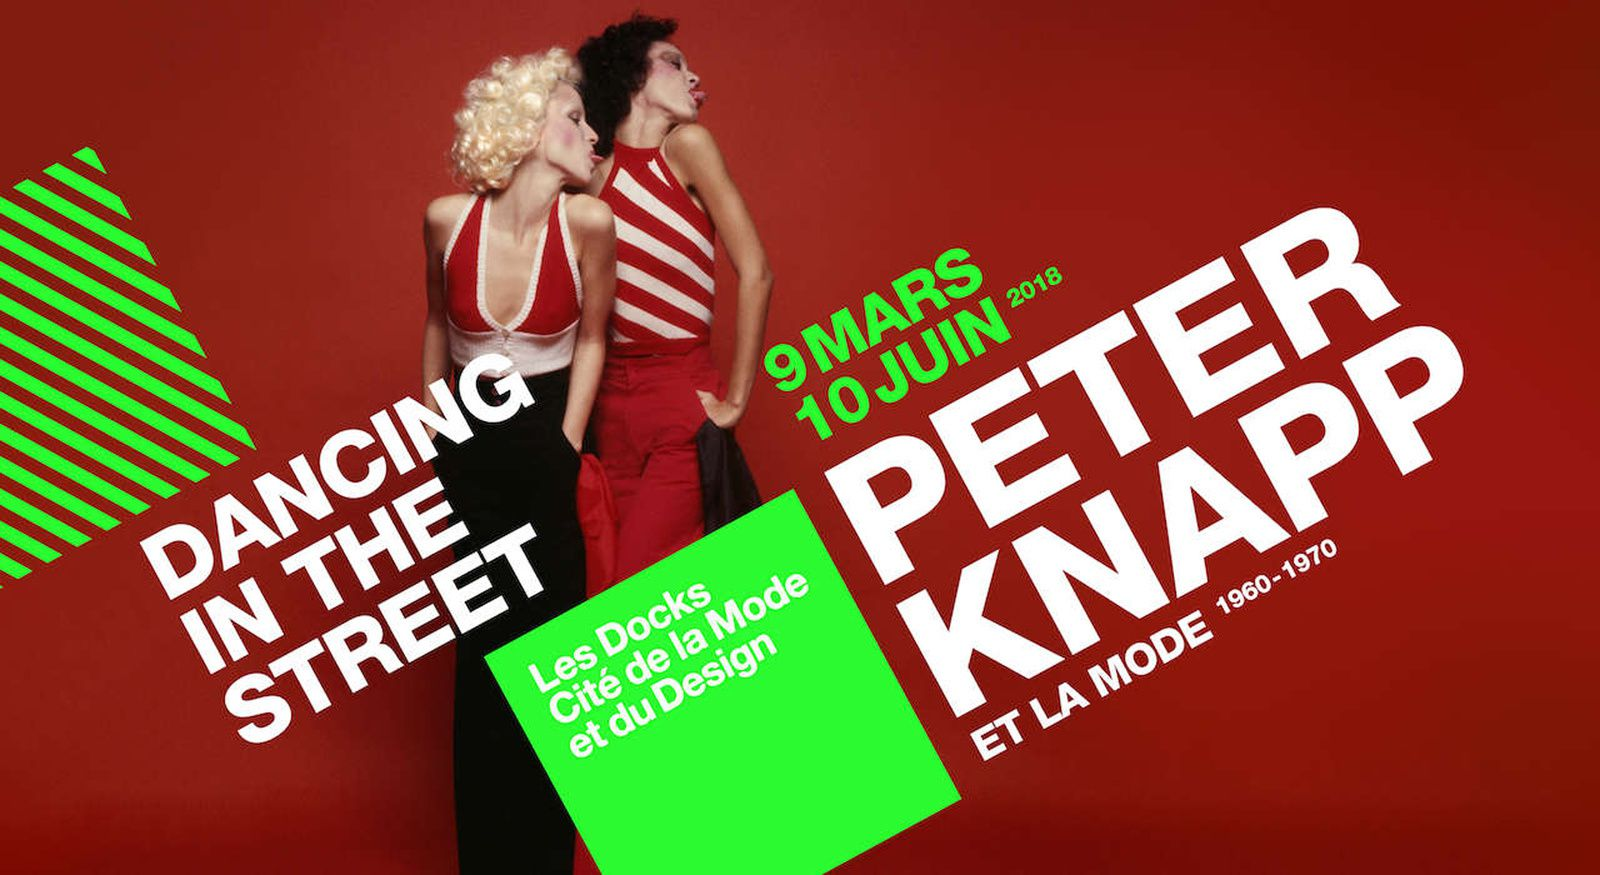 Exposition Photographie Contemporaine: Dancing in the Street :